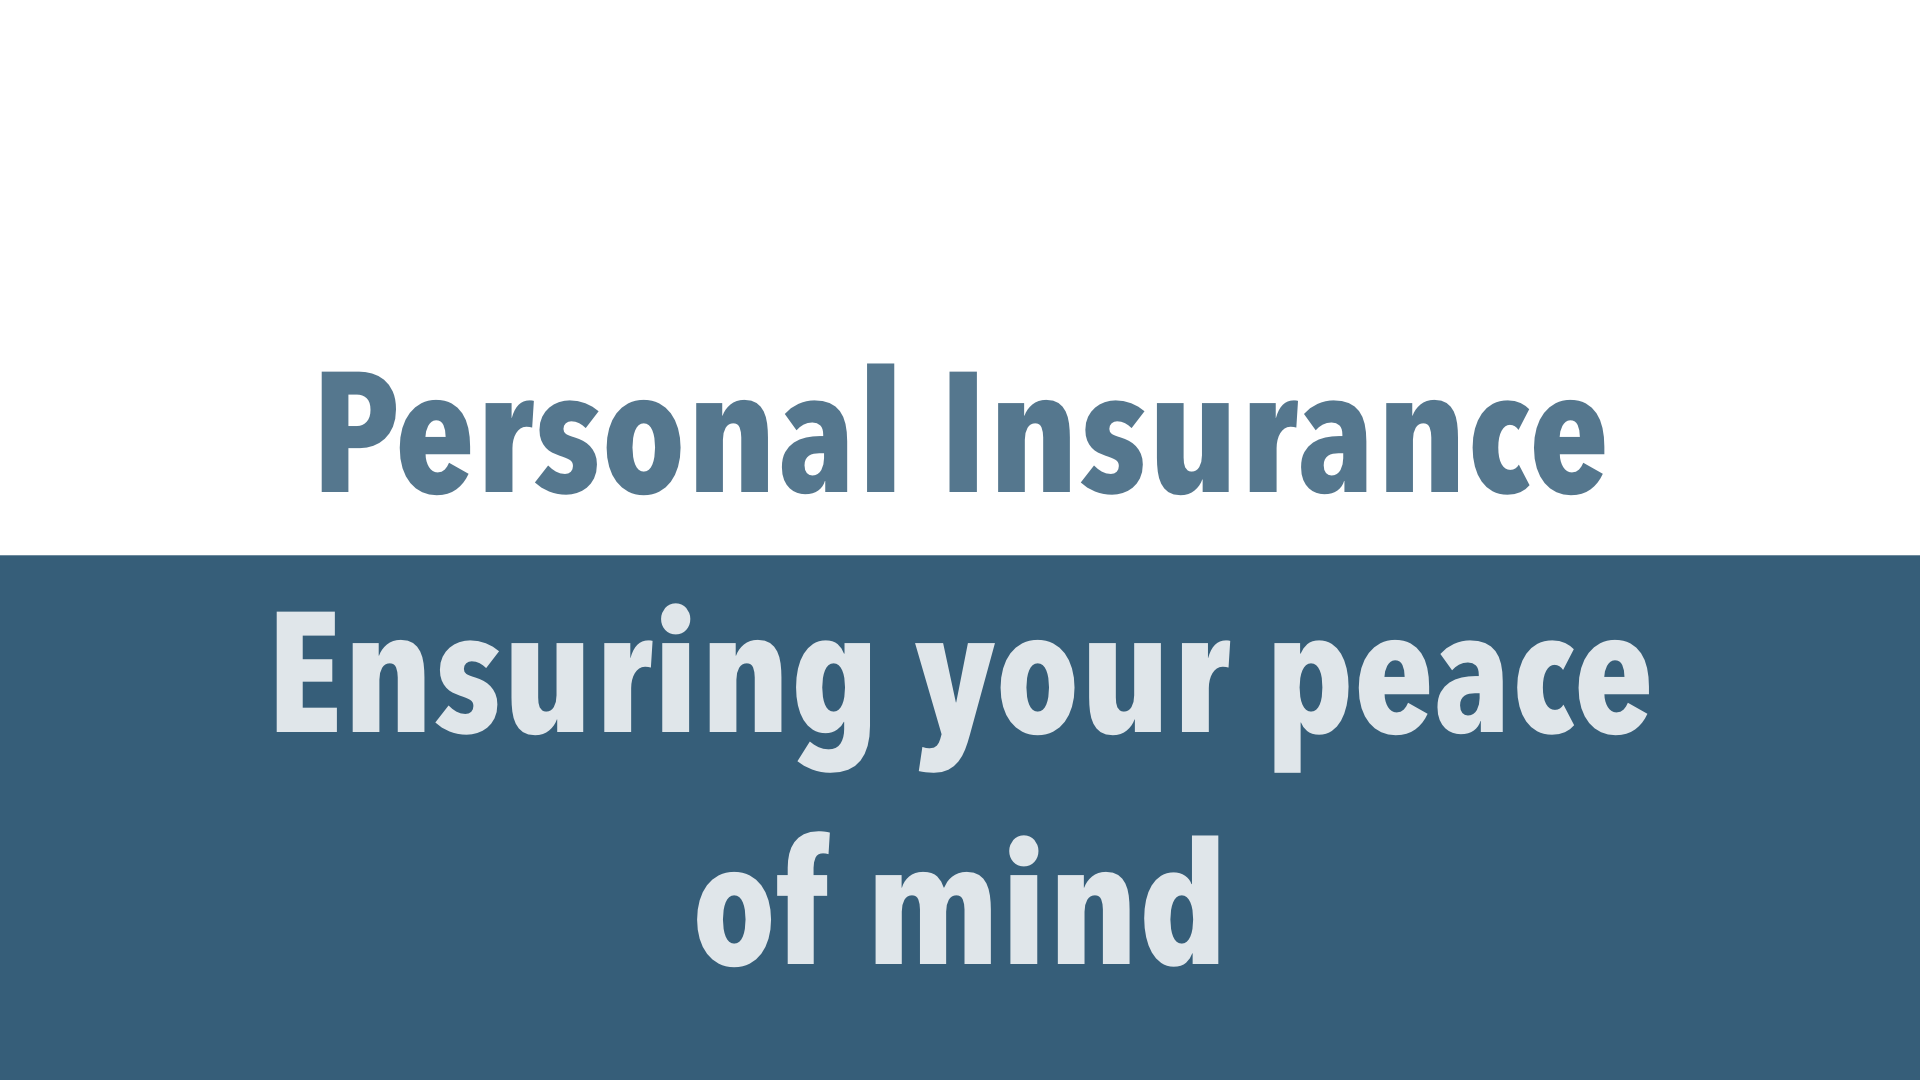 Personal Insurance - Ensuring your peace of mind